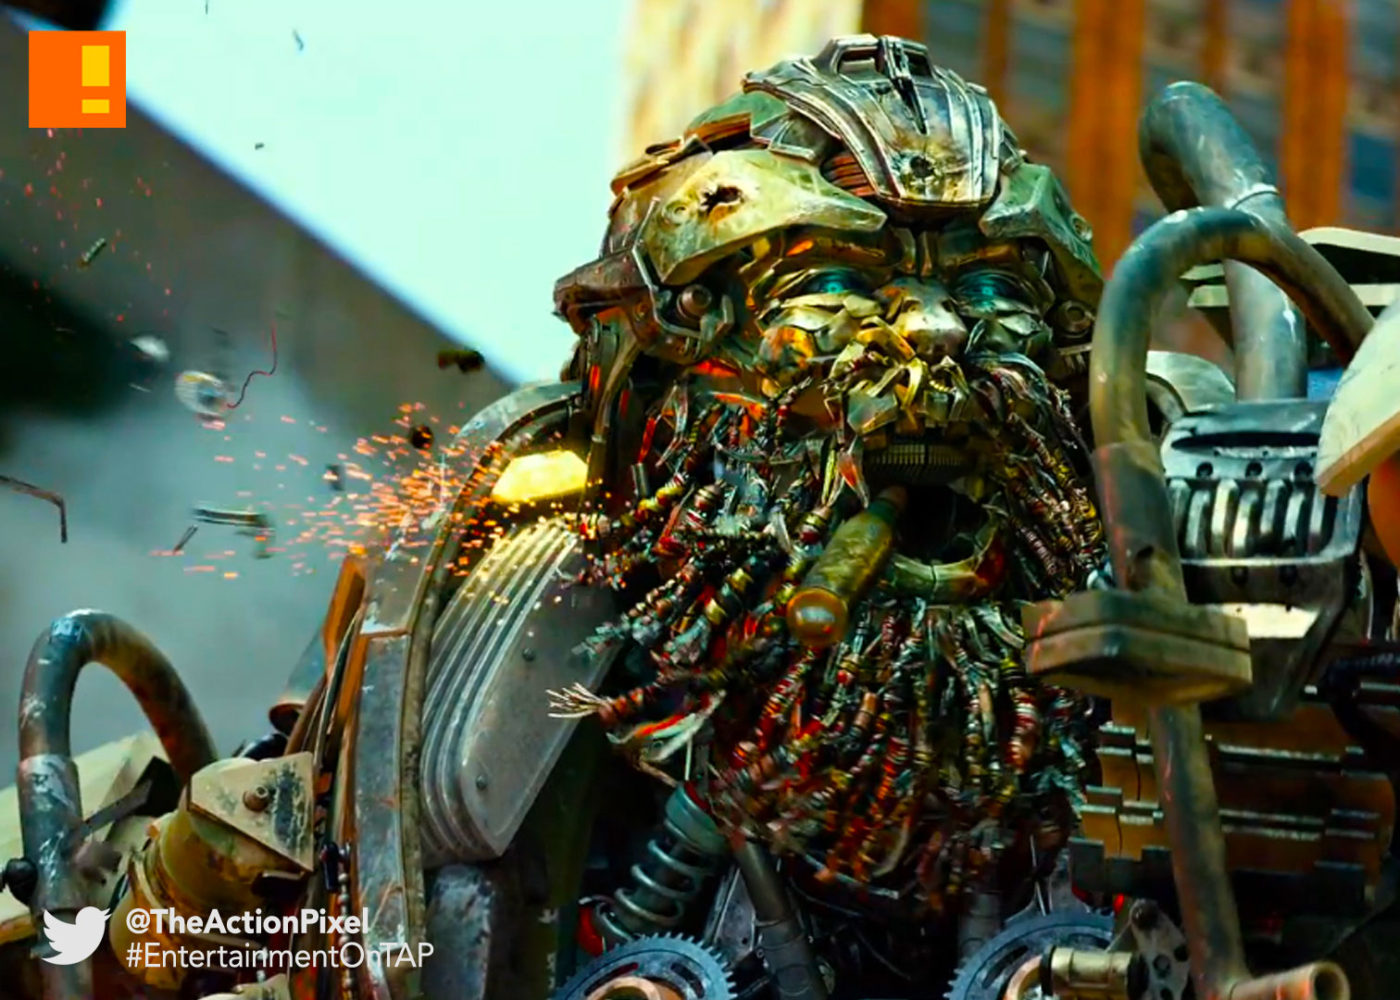 hound, transformers,transformers, The last knight, entertainment on tap, the action pixel, @theactionpixel, autobots, autobot, paramount pictures,